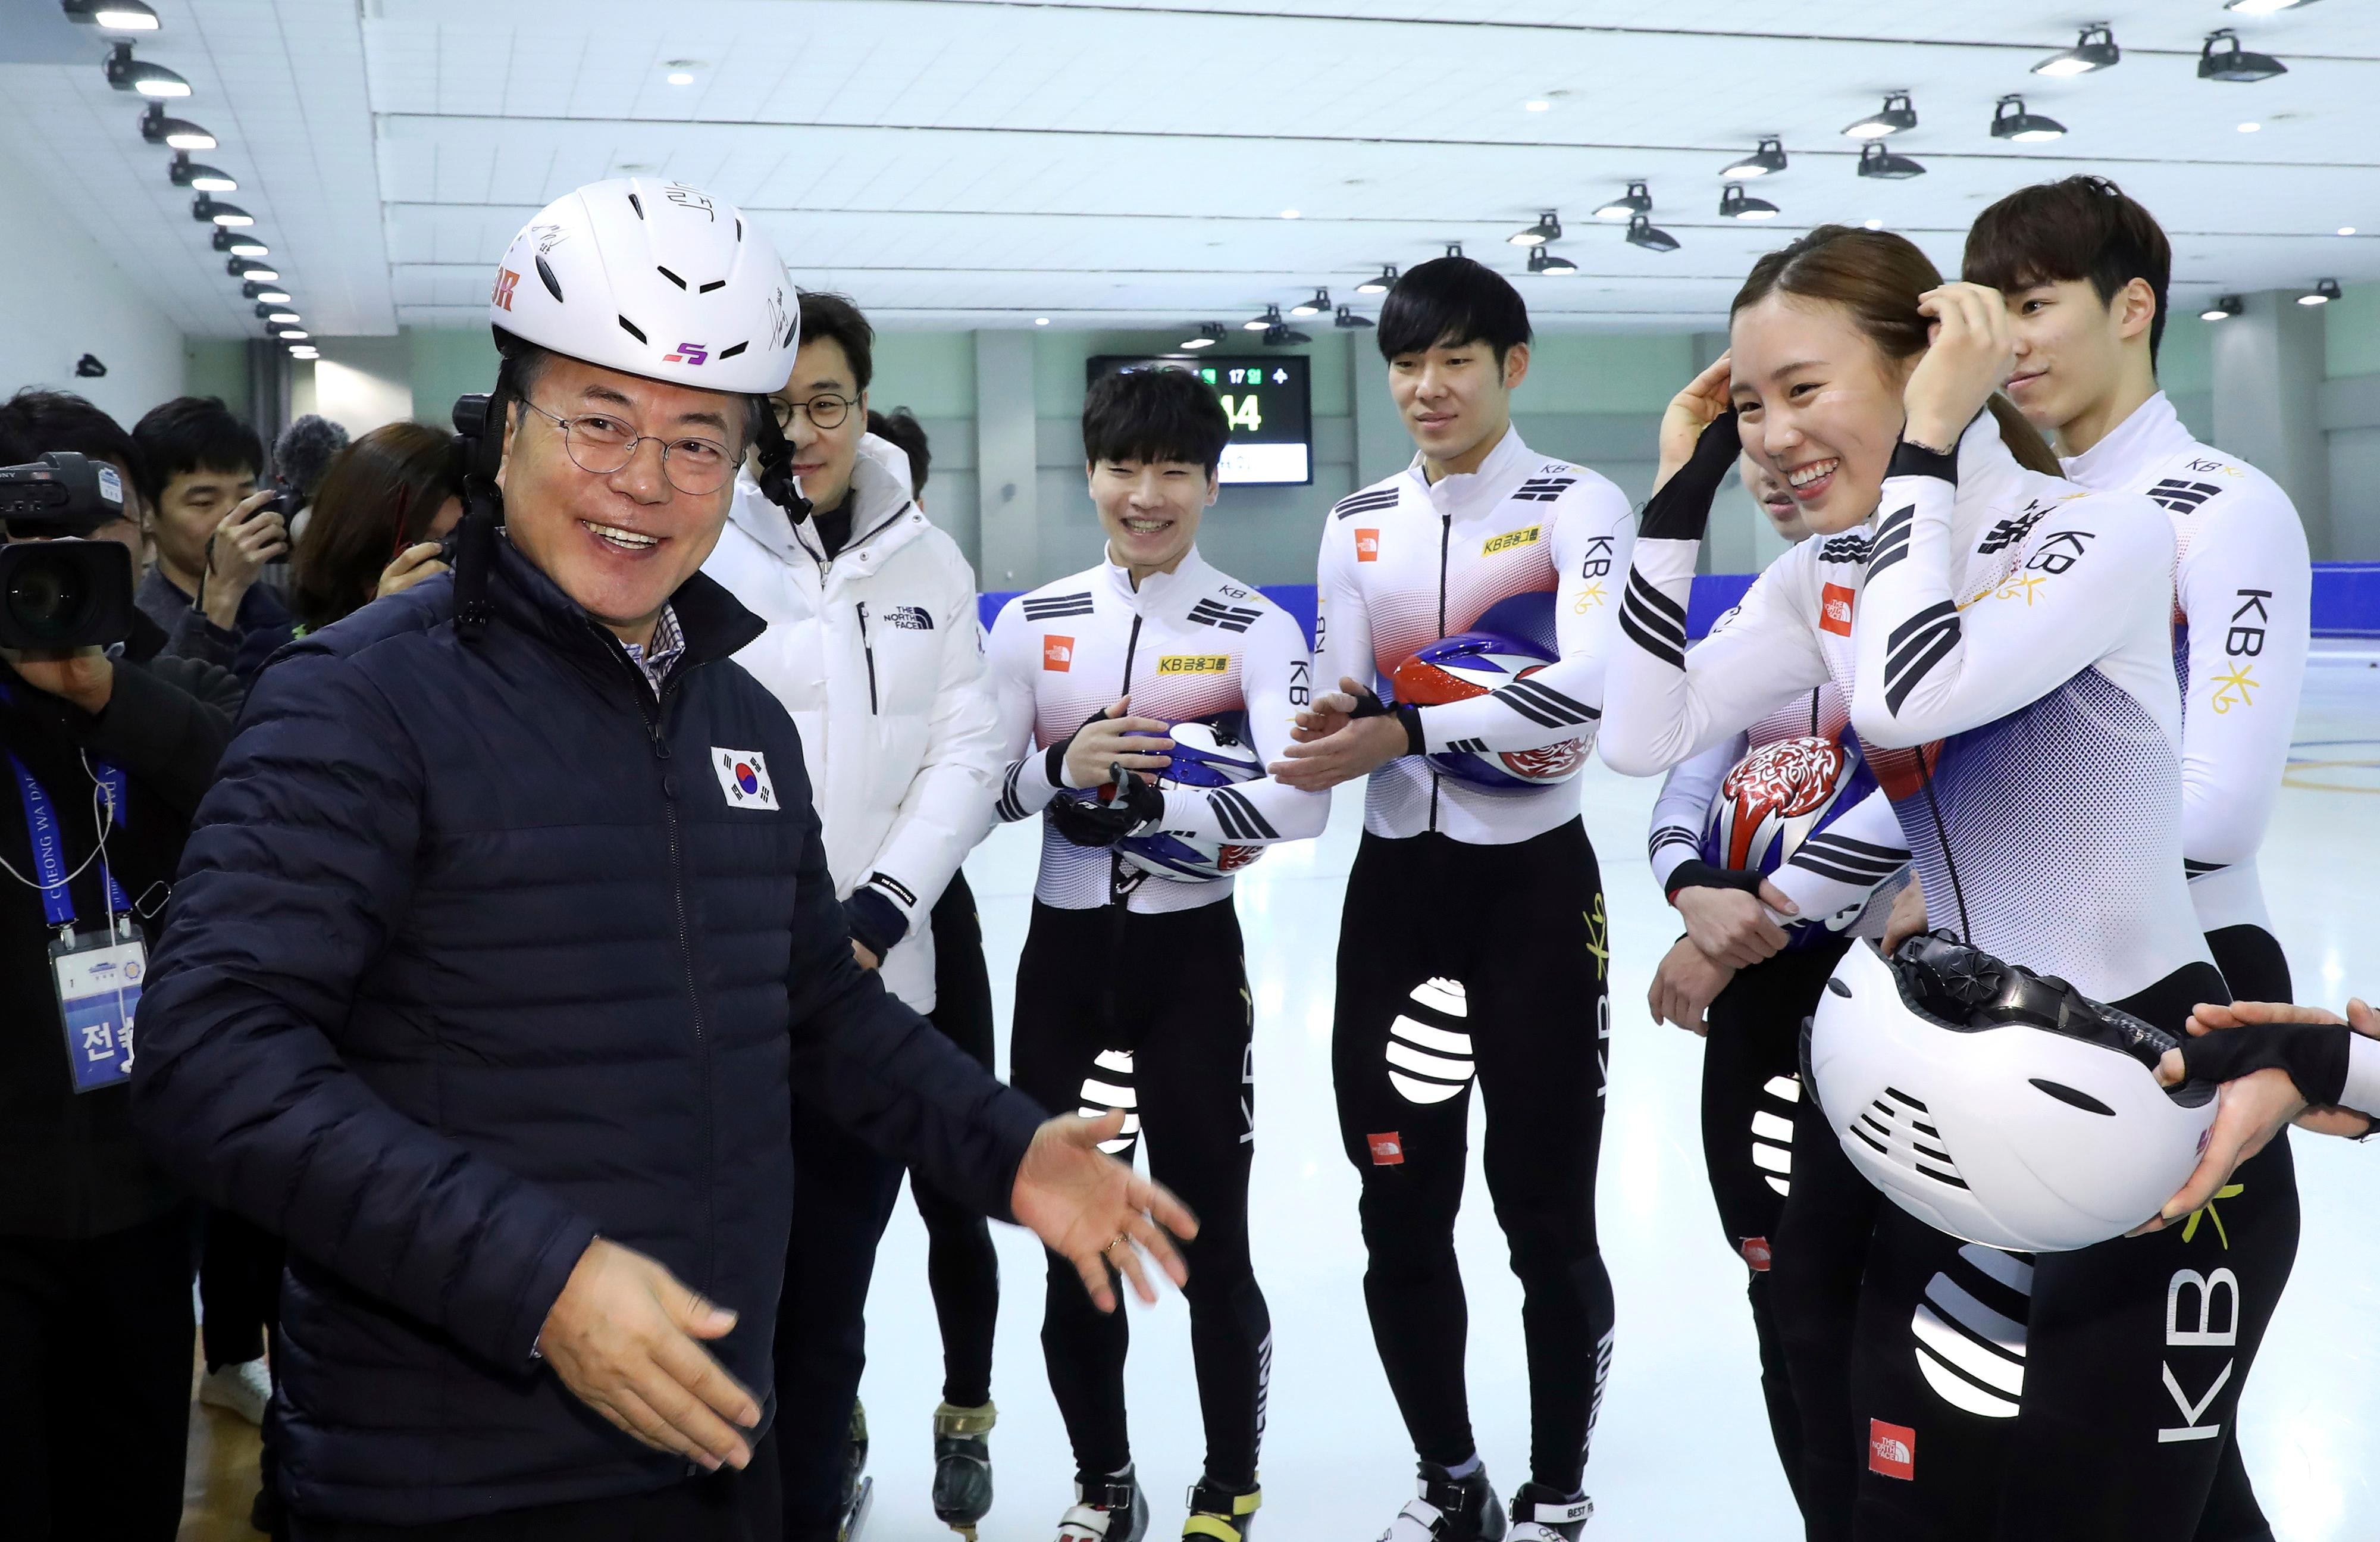 South Korean President Moon Jae-in, left, poses while meeting with South Korean national short track skaters during a visit to Jincheon National Training Center in Jincheon, South Korea, Wednesday, Jan. 17, 2018. (Ha Sa-hun/Yonhap via AP)